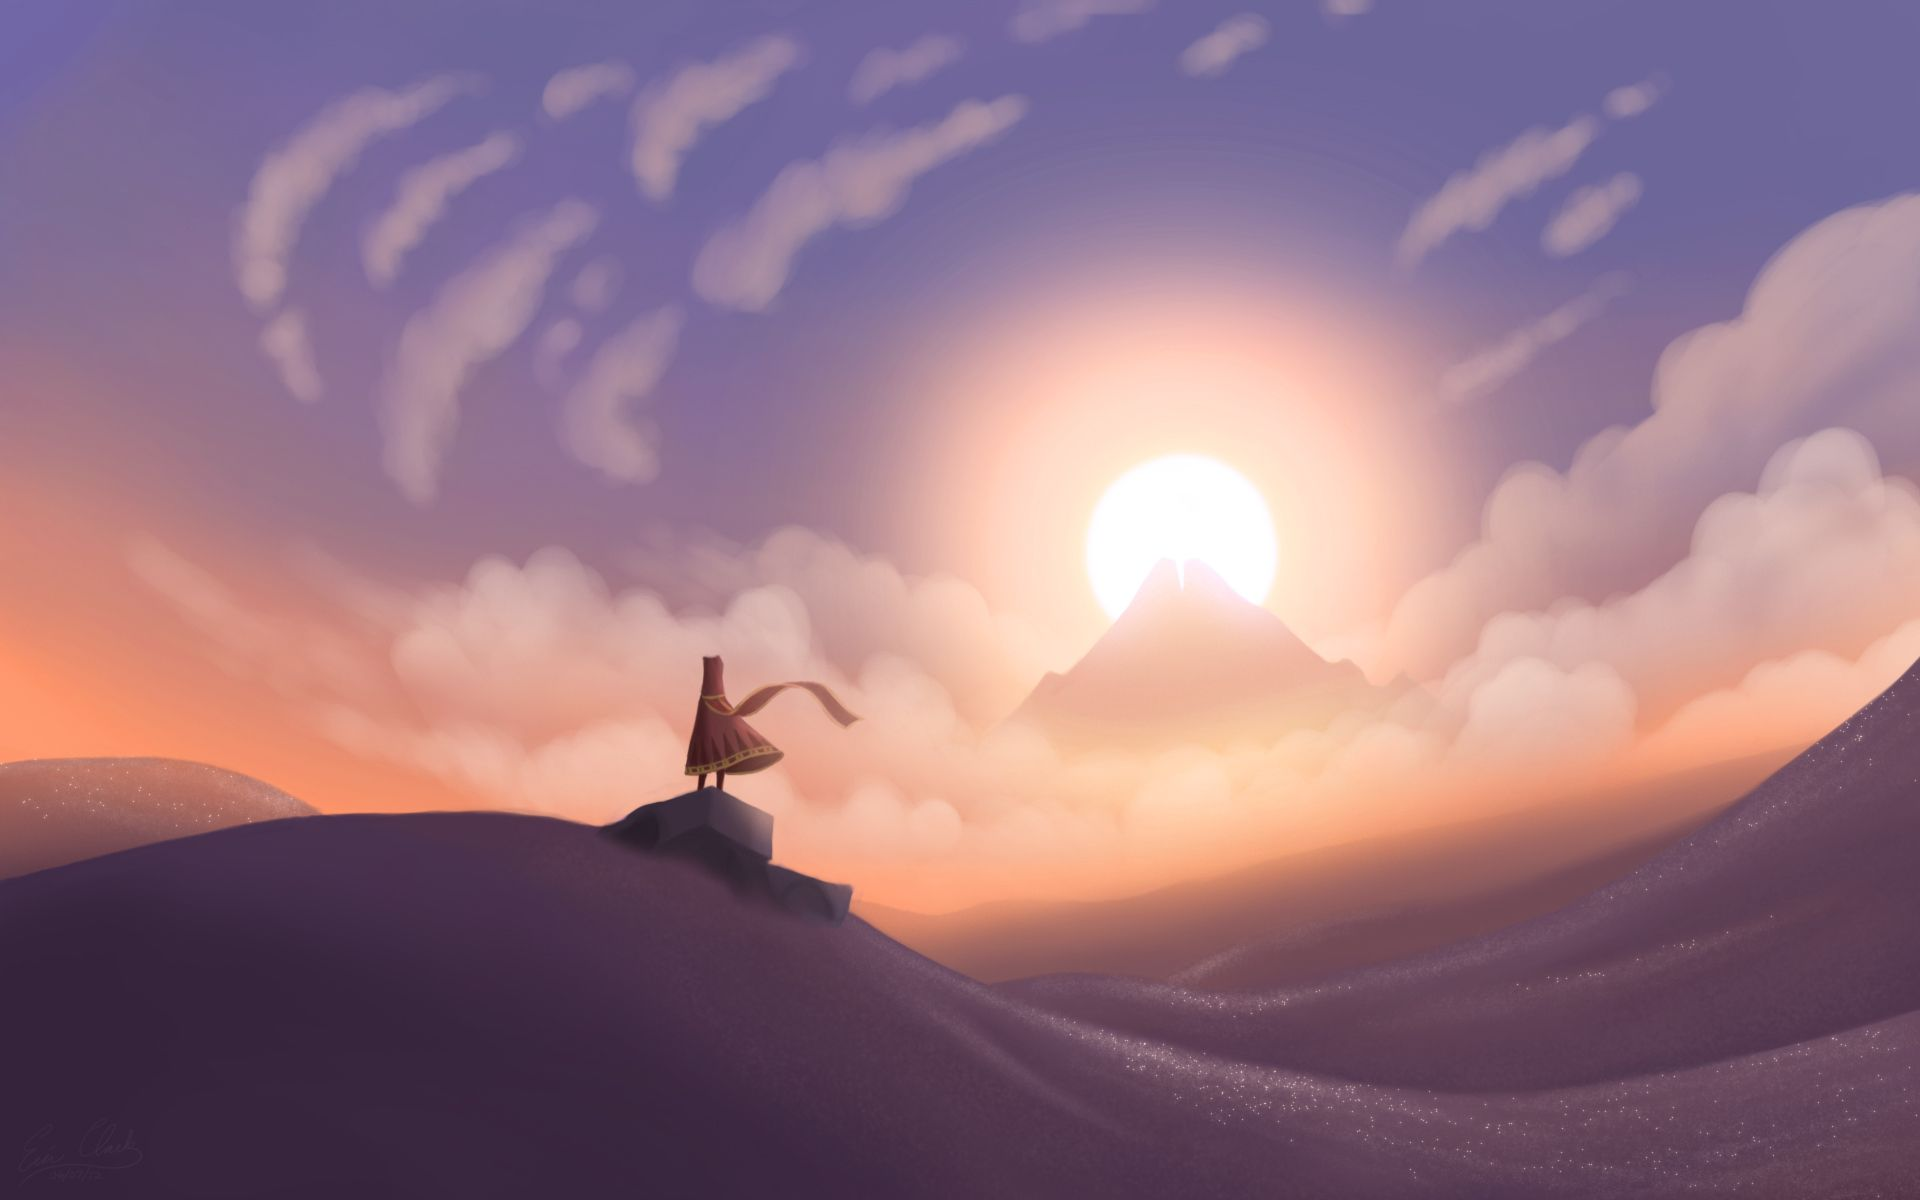 Journey Sunset by sawuinhaffdeviantartcom on deviantART 1920x1200